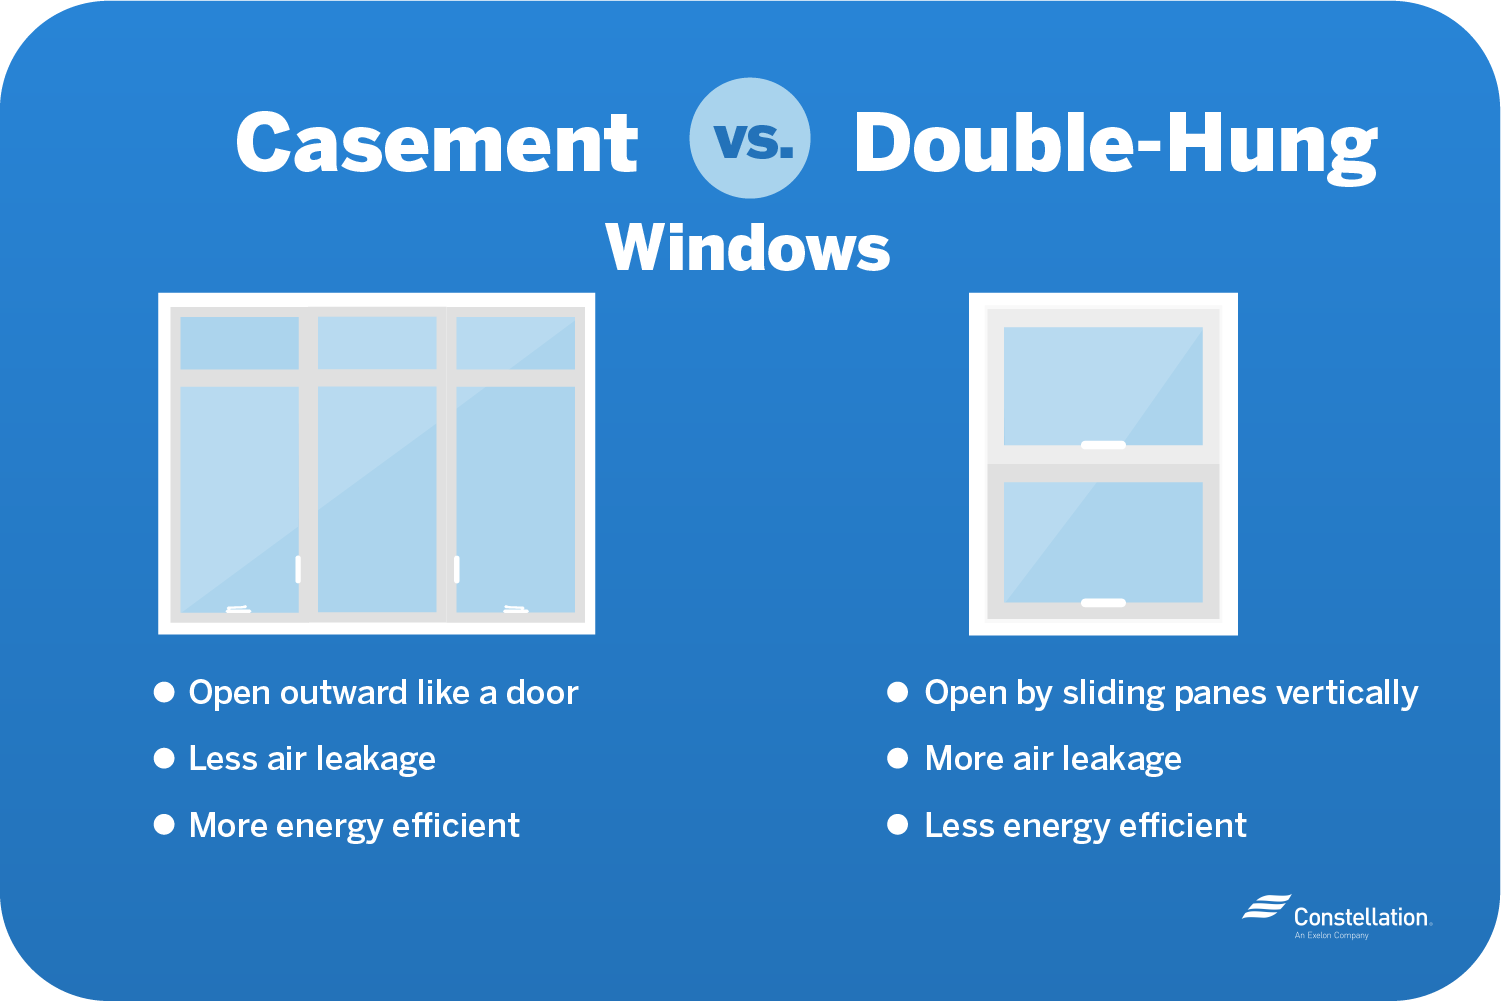 Casement vs. Double Hung Windows Comparison